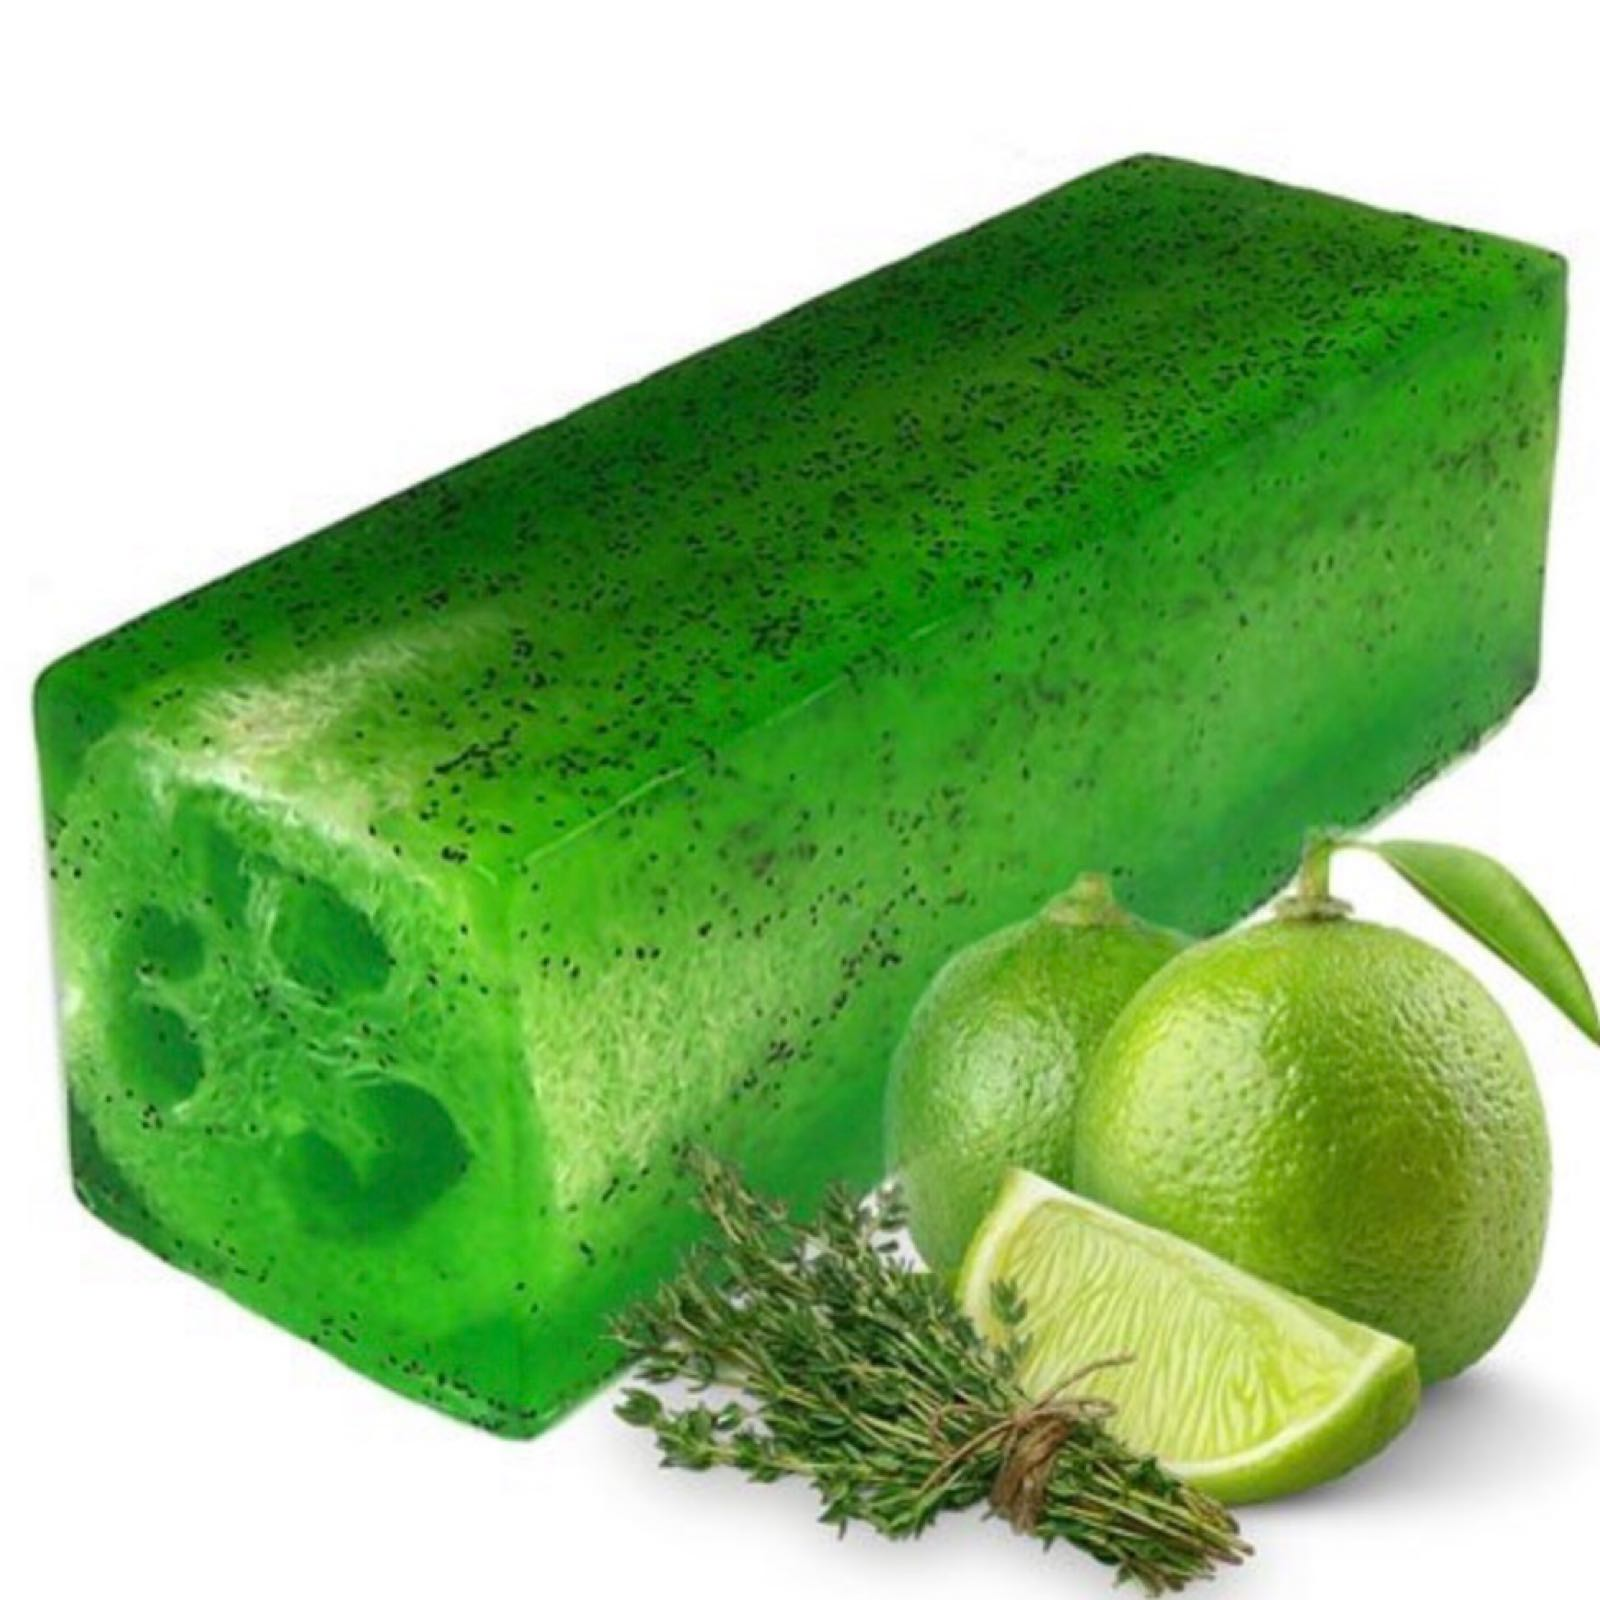 Lime & Thyme Loofah Soap Slice